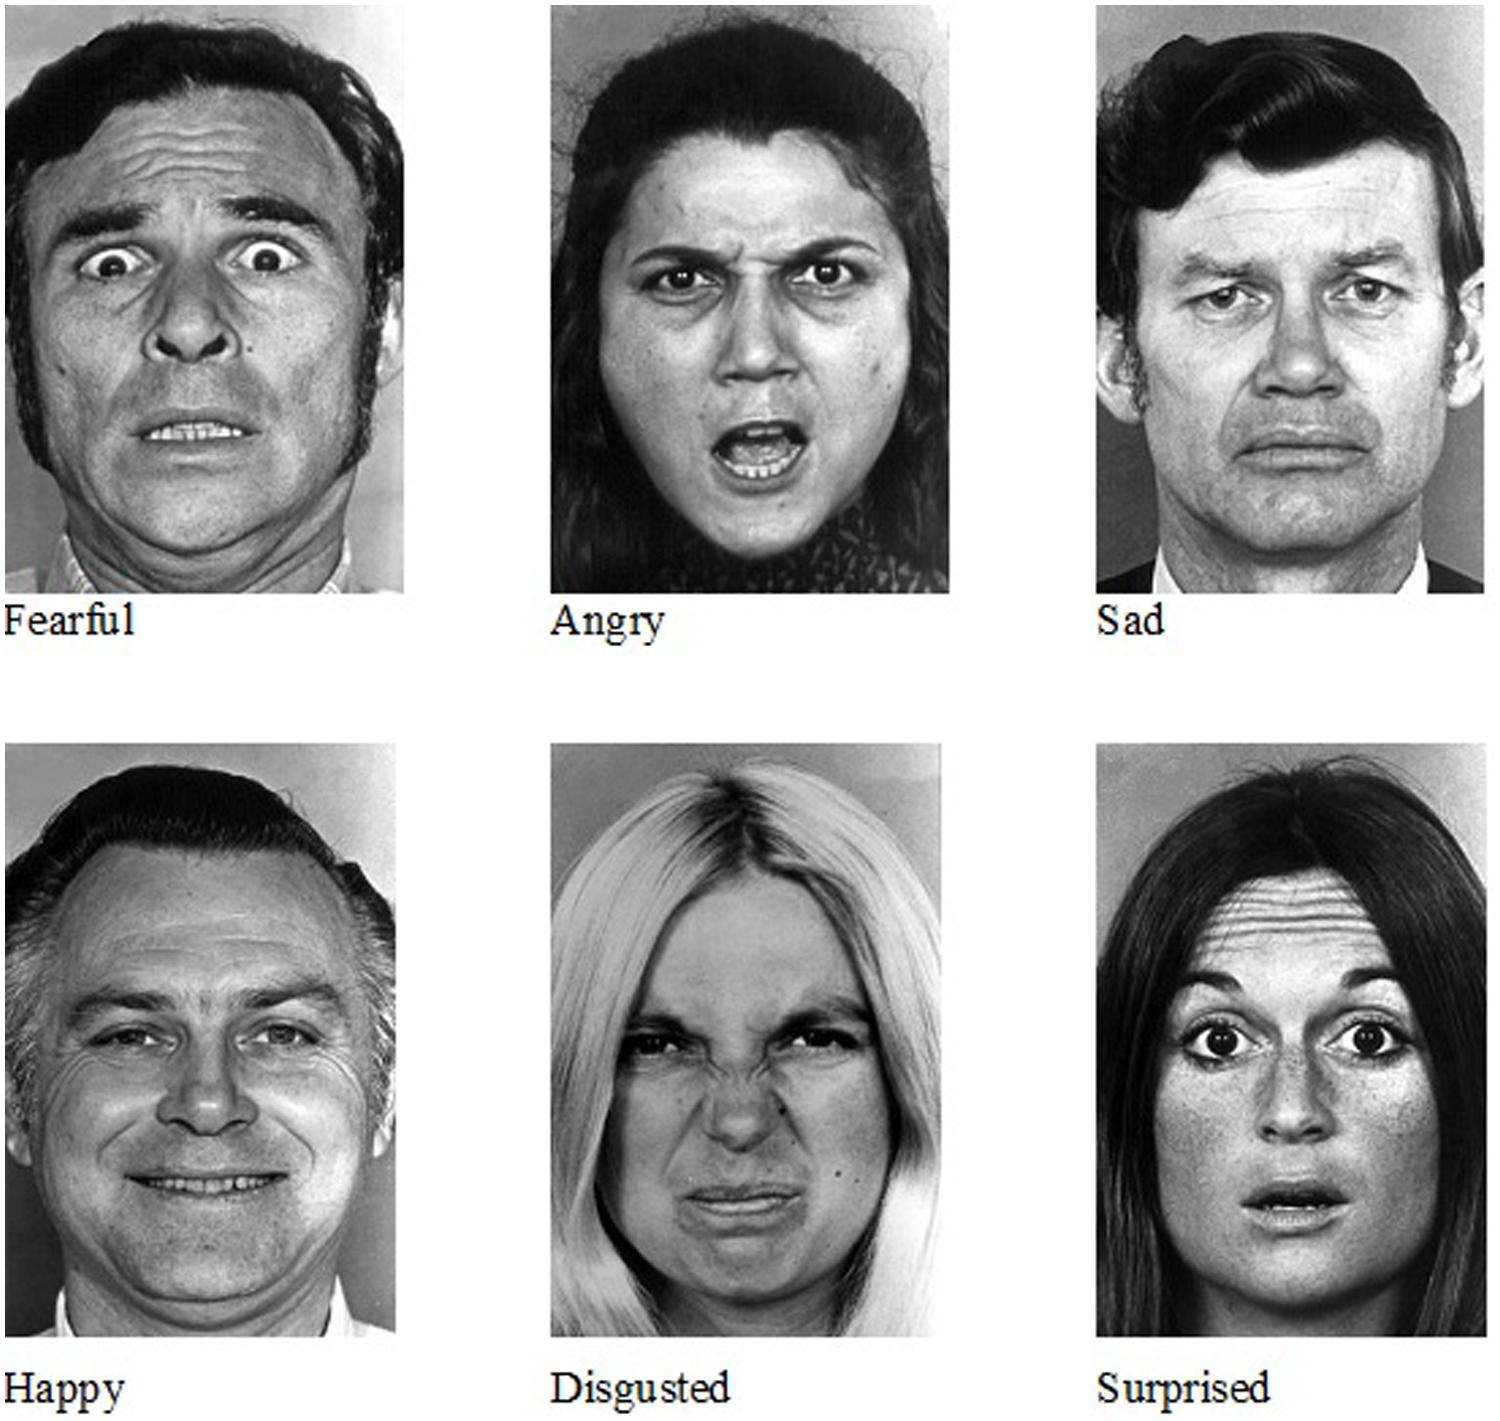 In pictures: Scientists map 21 facial expressions and emotions